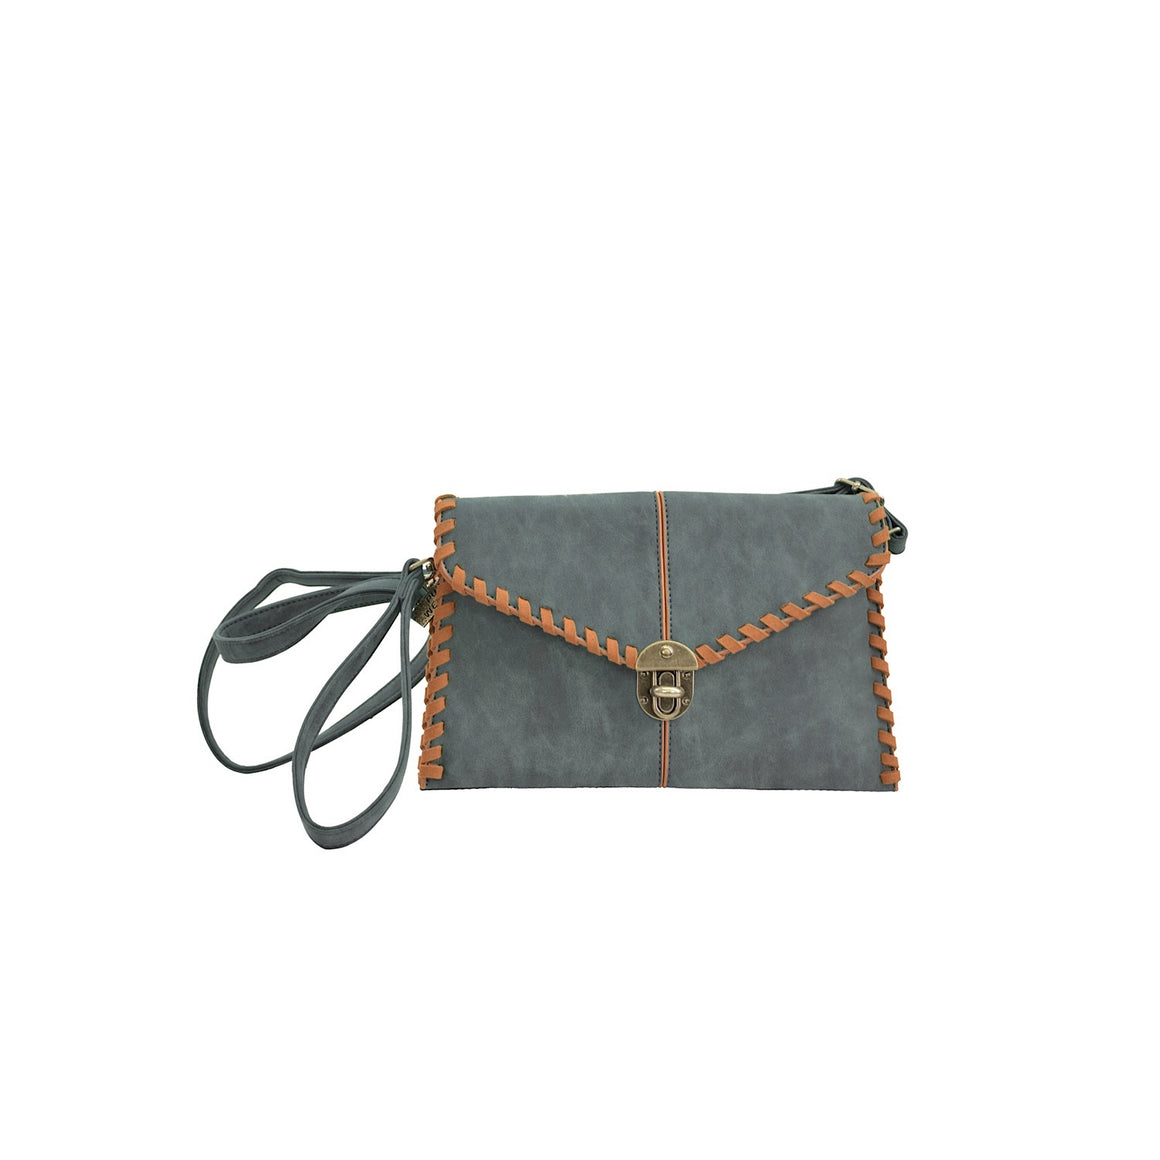 Pure Western Womens Kailee Clutch Bag Slate/Tan P0S2940HBG